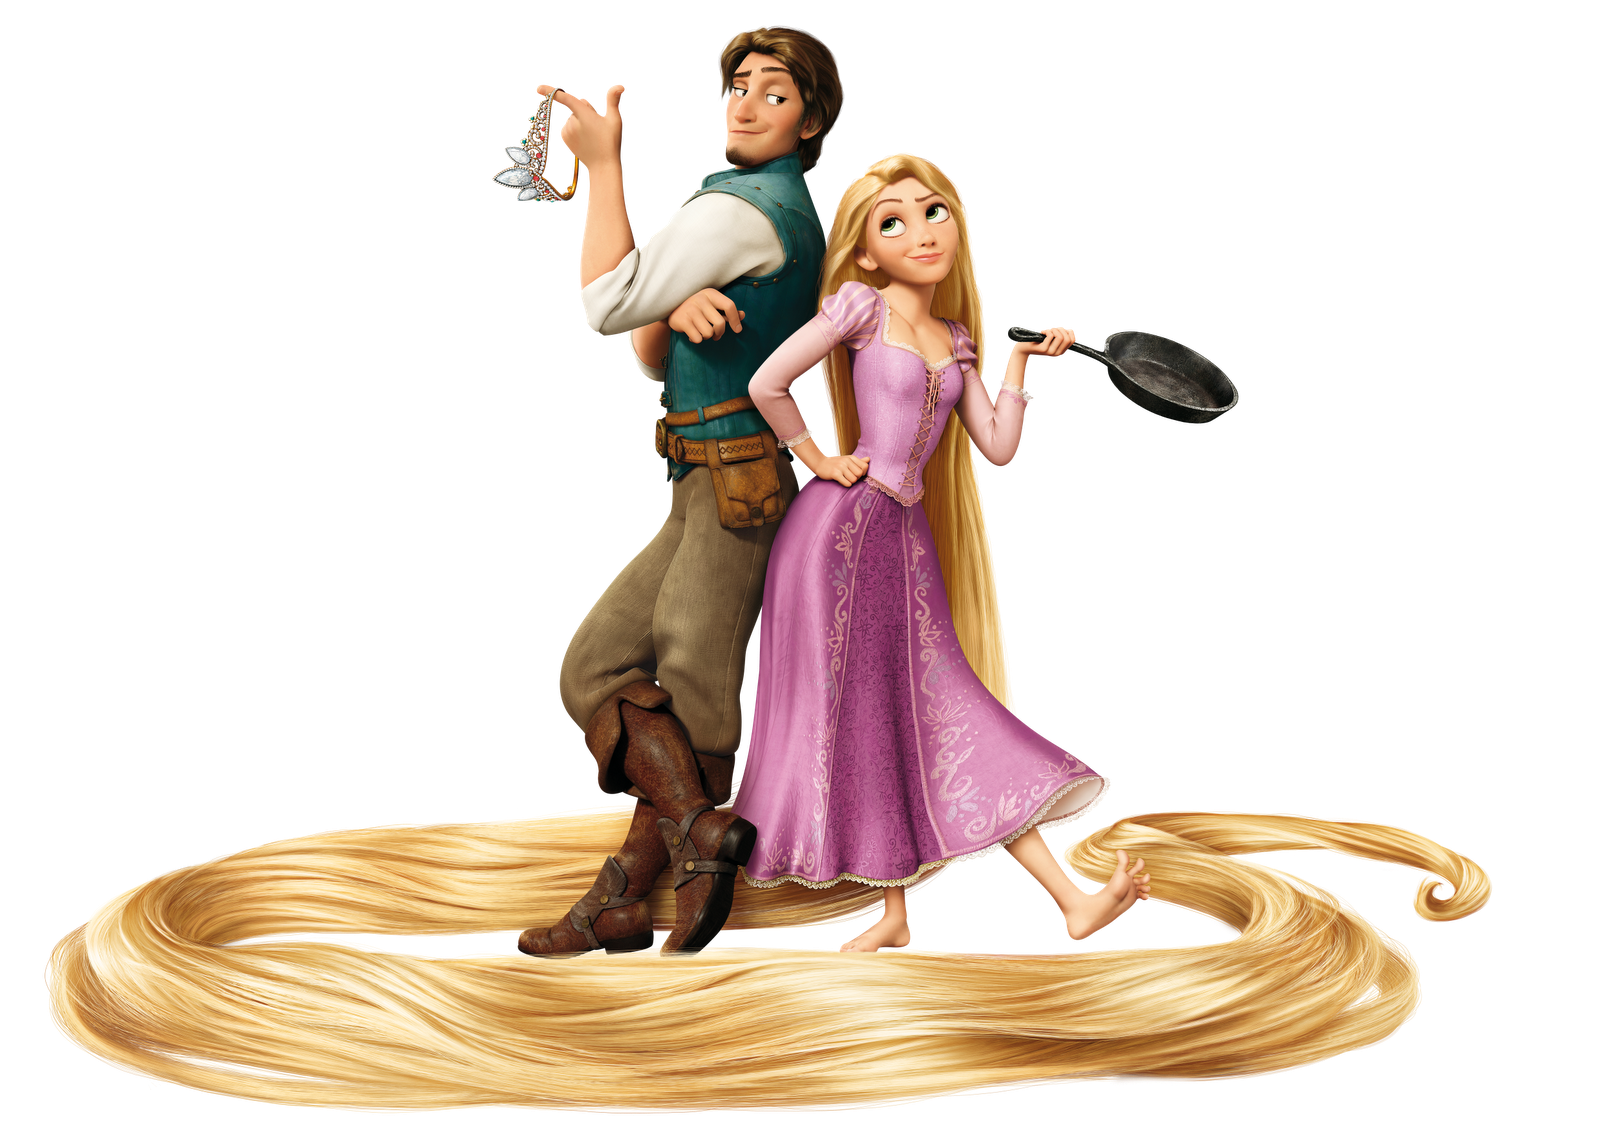 Disney Flynn and Rapunzel png